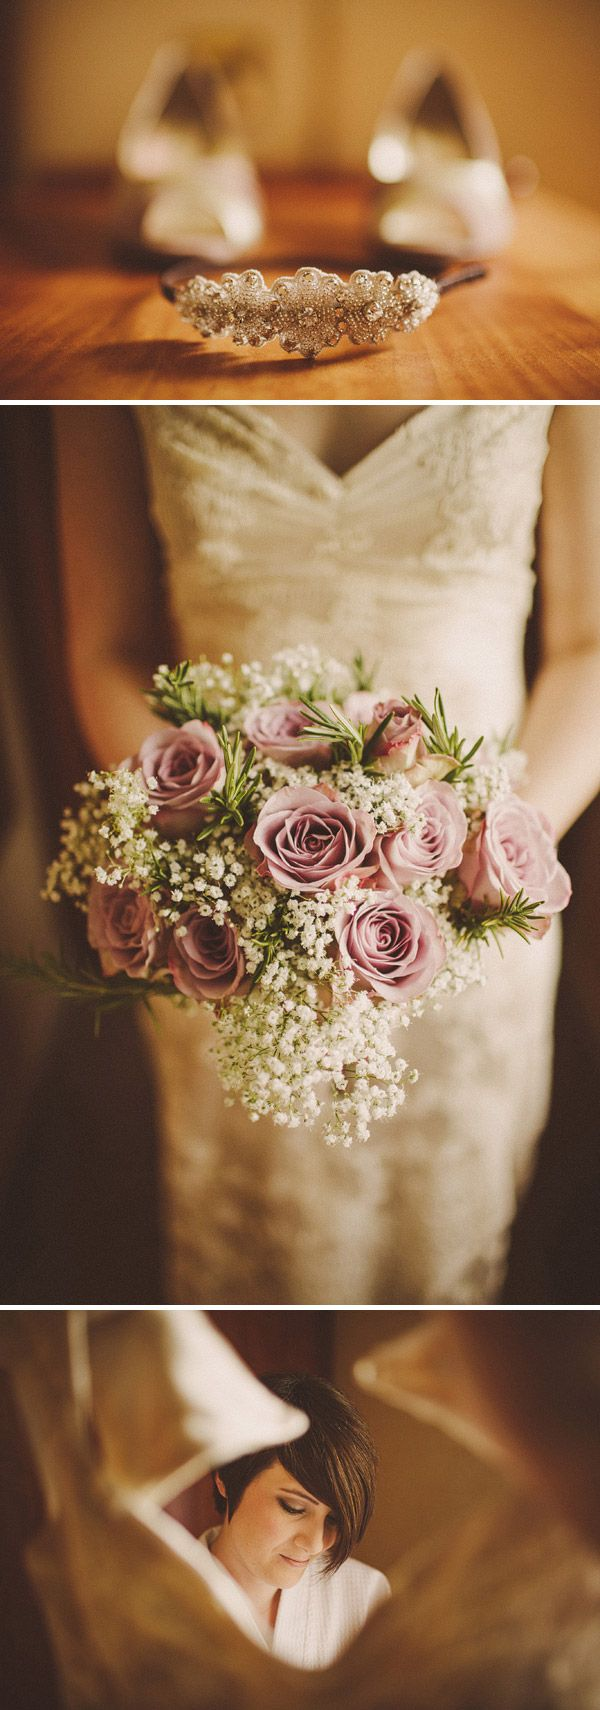 wedding flowers with gypsophila and roses mink - Google Search